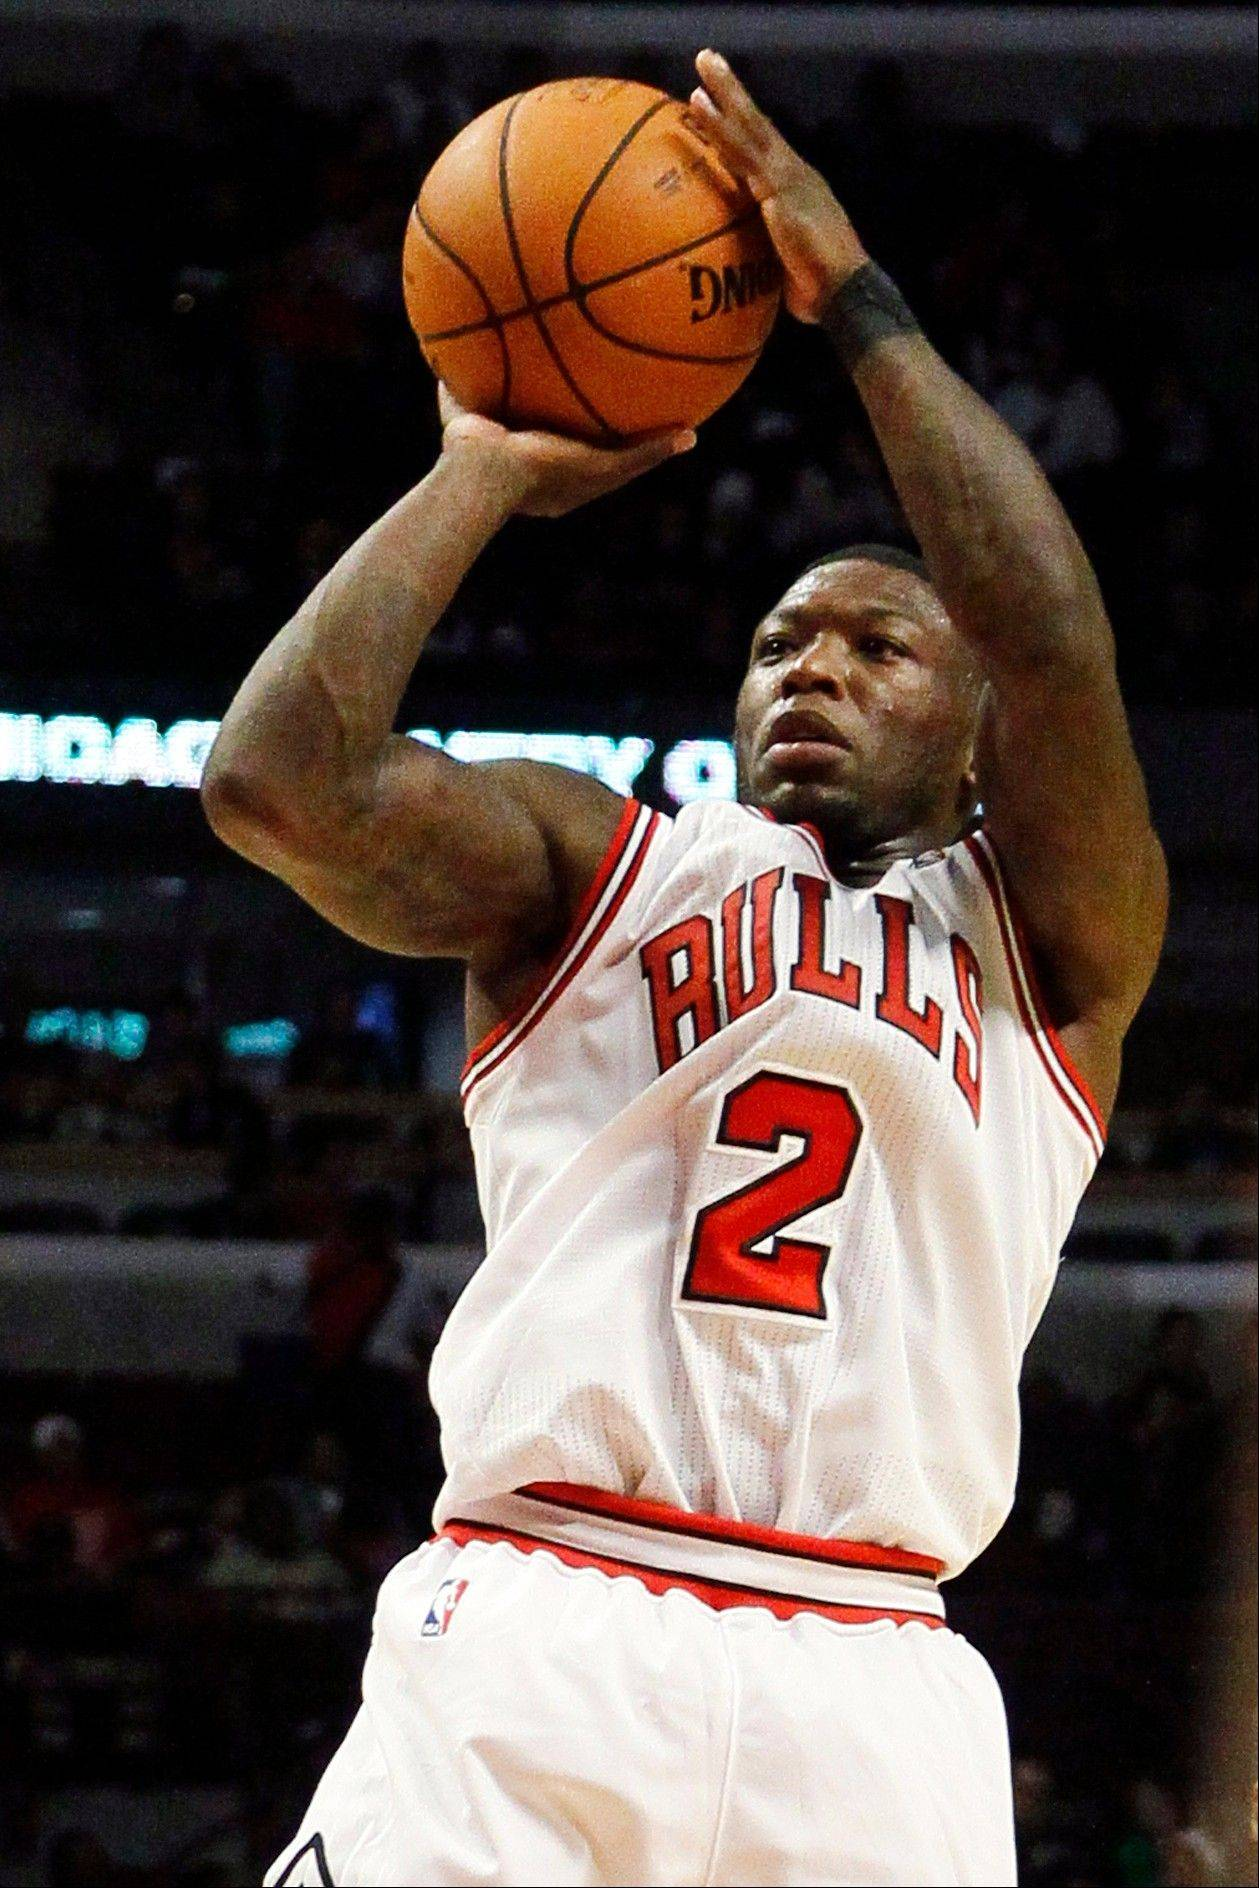 Bulls guard Nate Robinson finished with 24 points and 13 rebounds in Tuesday night�s preseason victory over the Milwaukee Bucks.